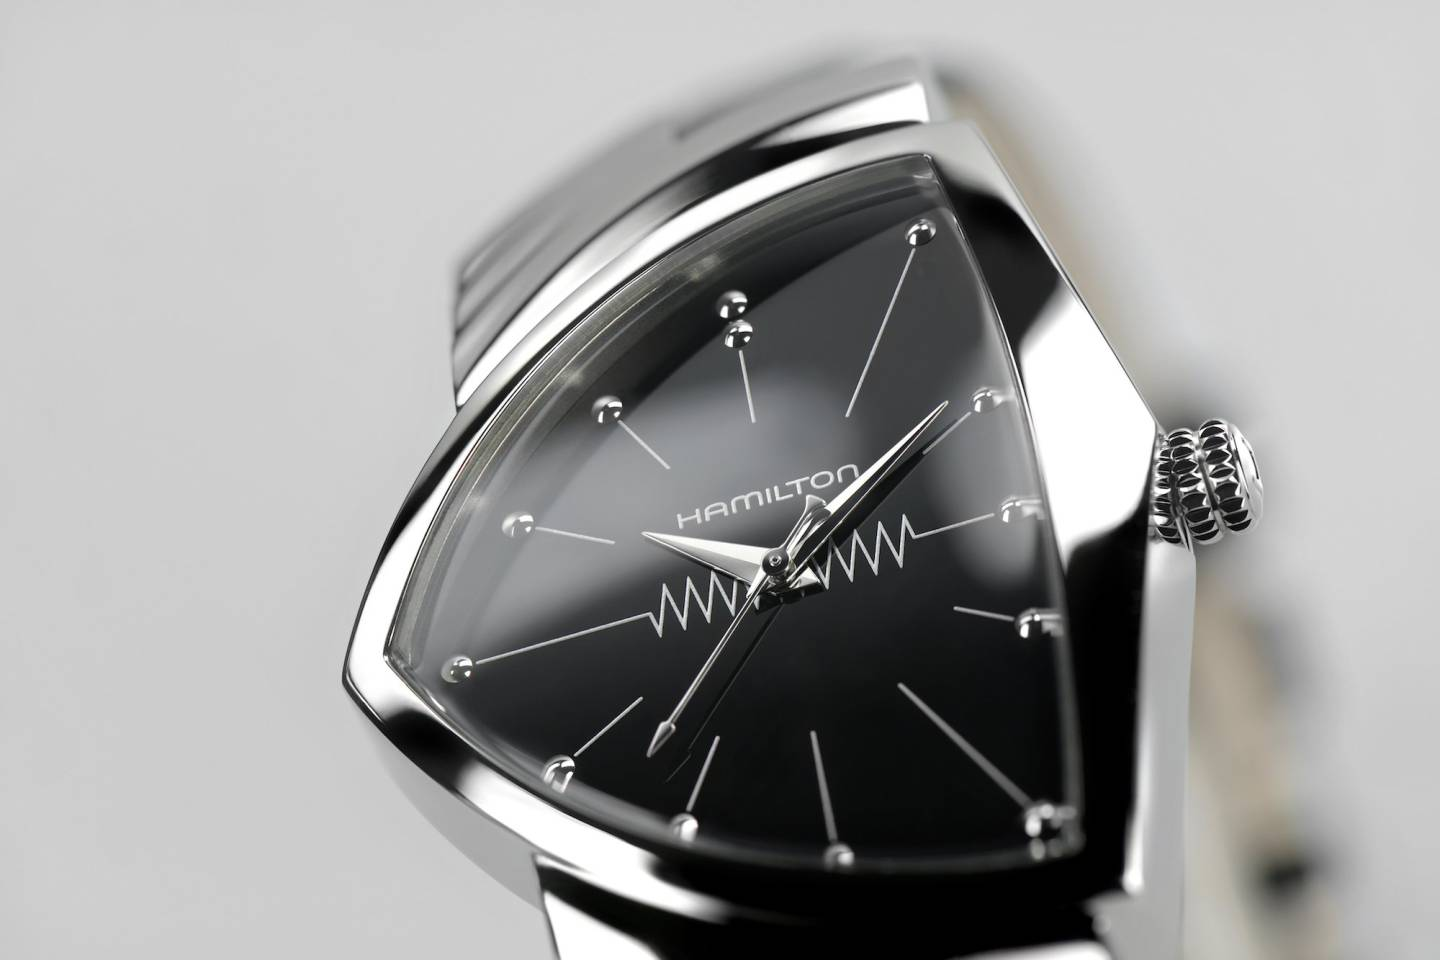 La montre choisie par les Men in Black.